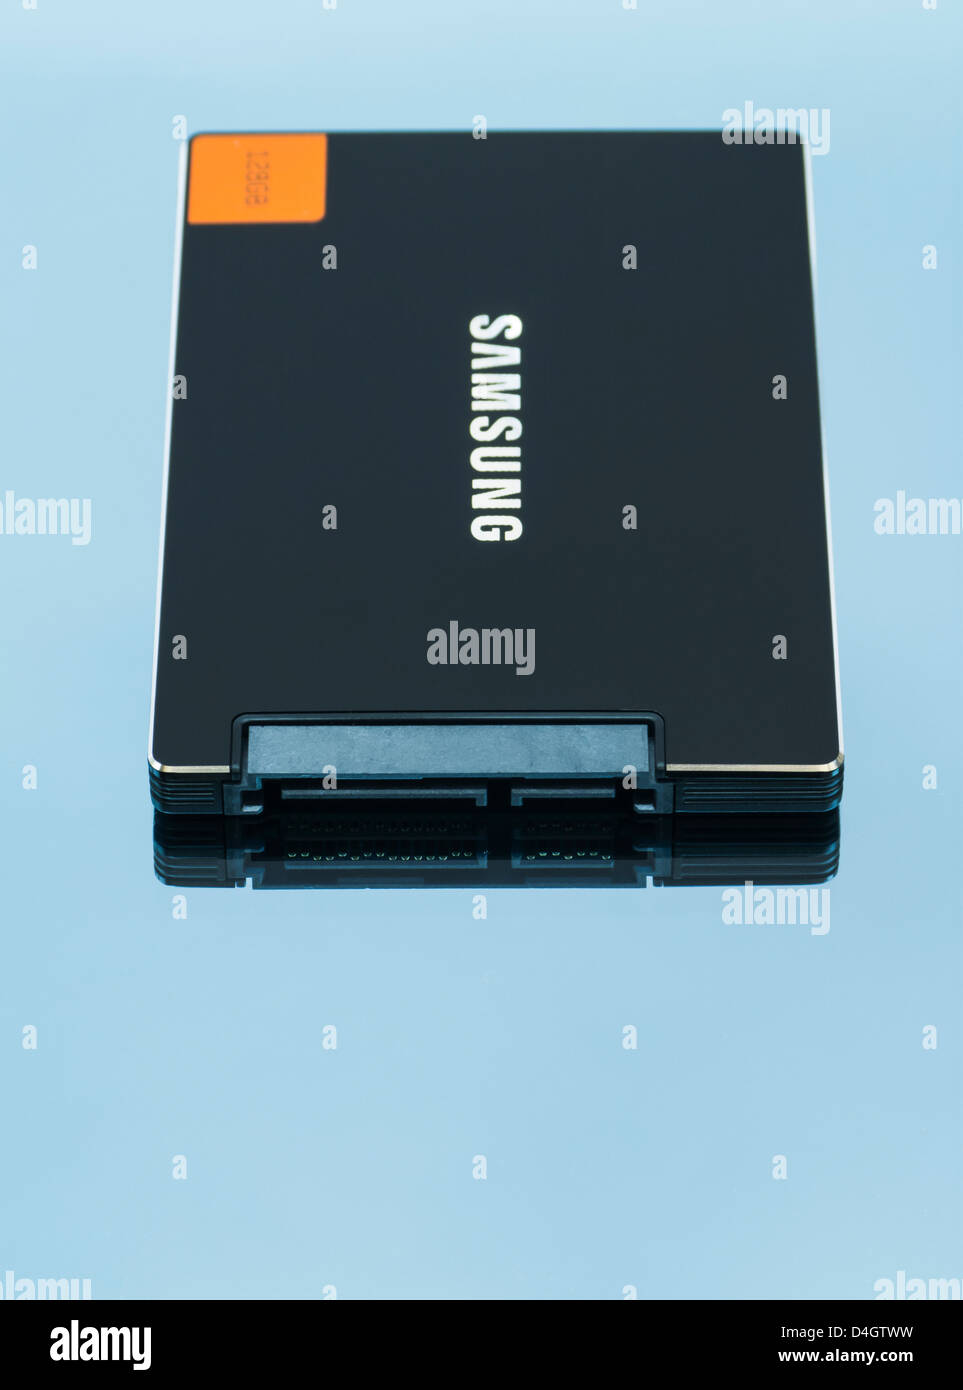 Samsung Solid State Drive - Stock Image